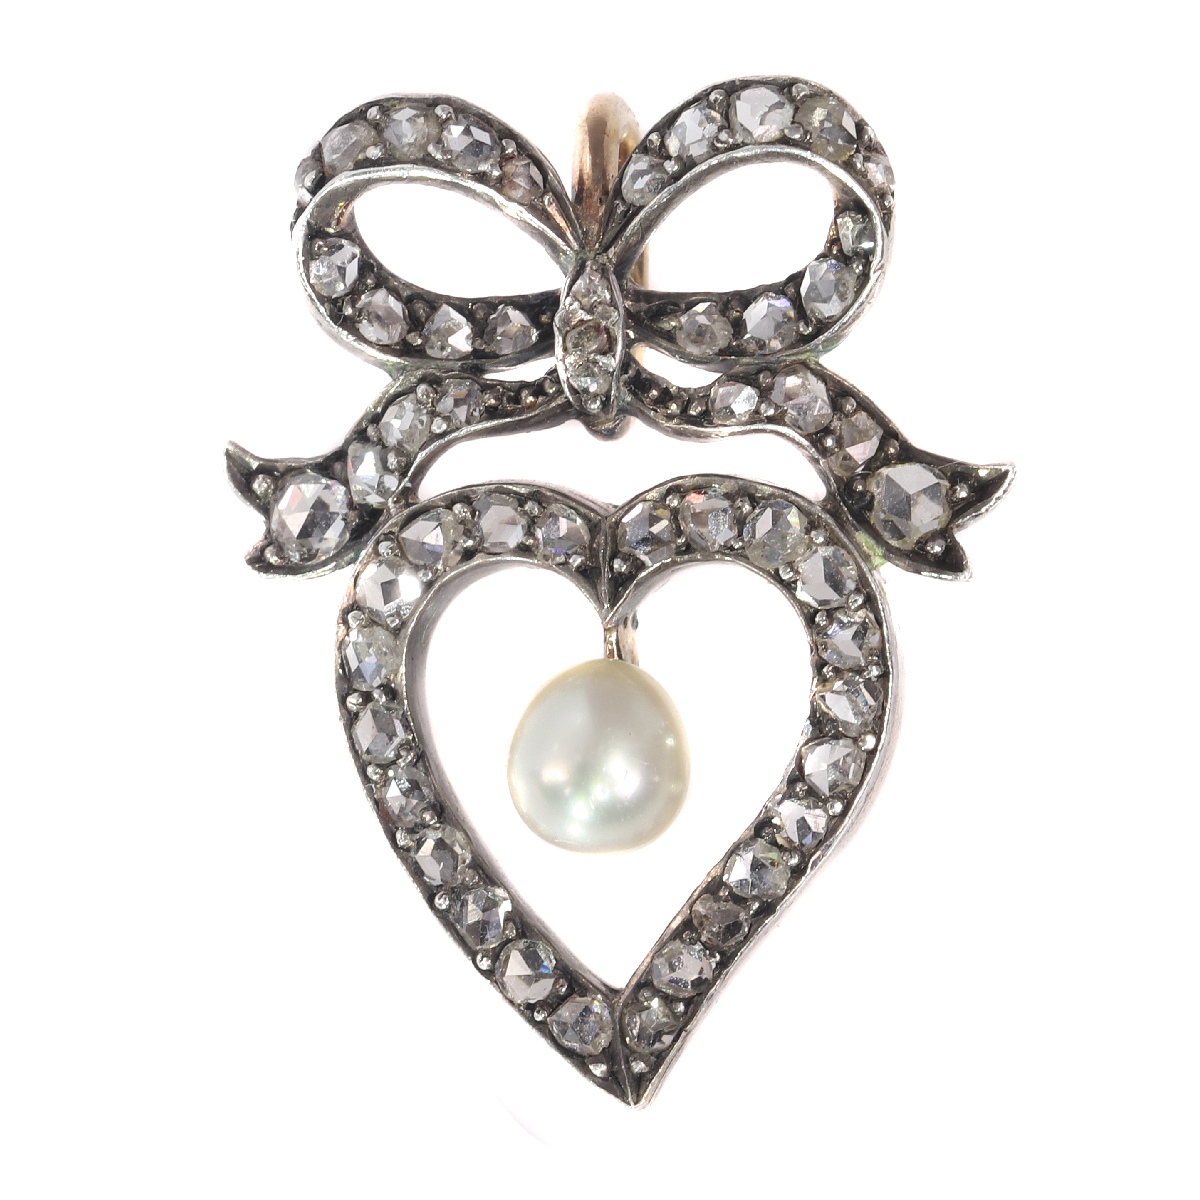 Antique Victorian diamond heart pendant